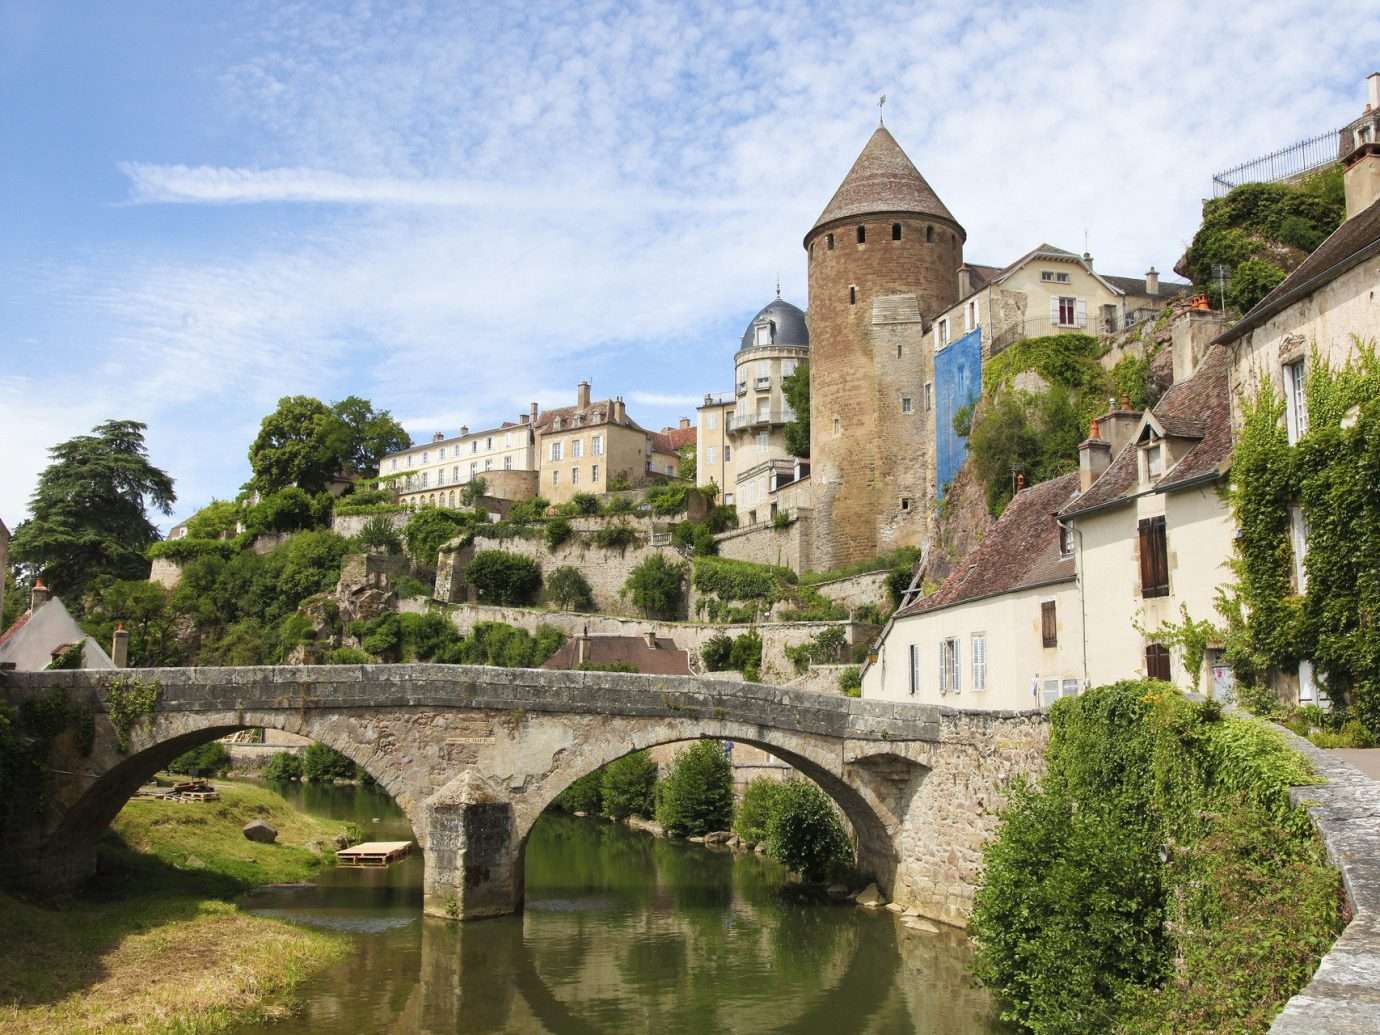 Trip Ideas outdoor sky grass building Town landmark human settlement stone house River castle tourism estate waterway château Village moat ancient history old bridge monastery water castle abbey